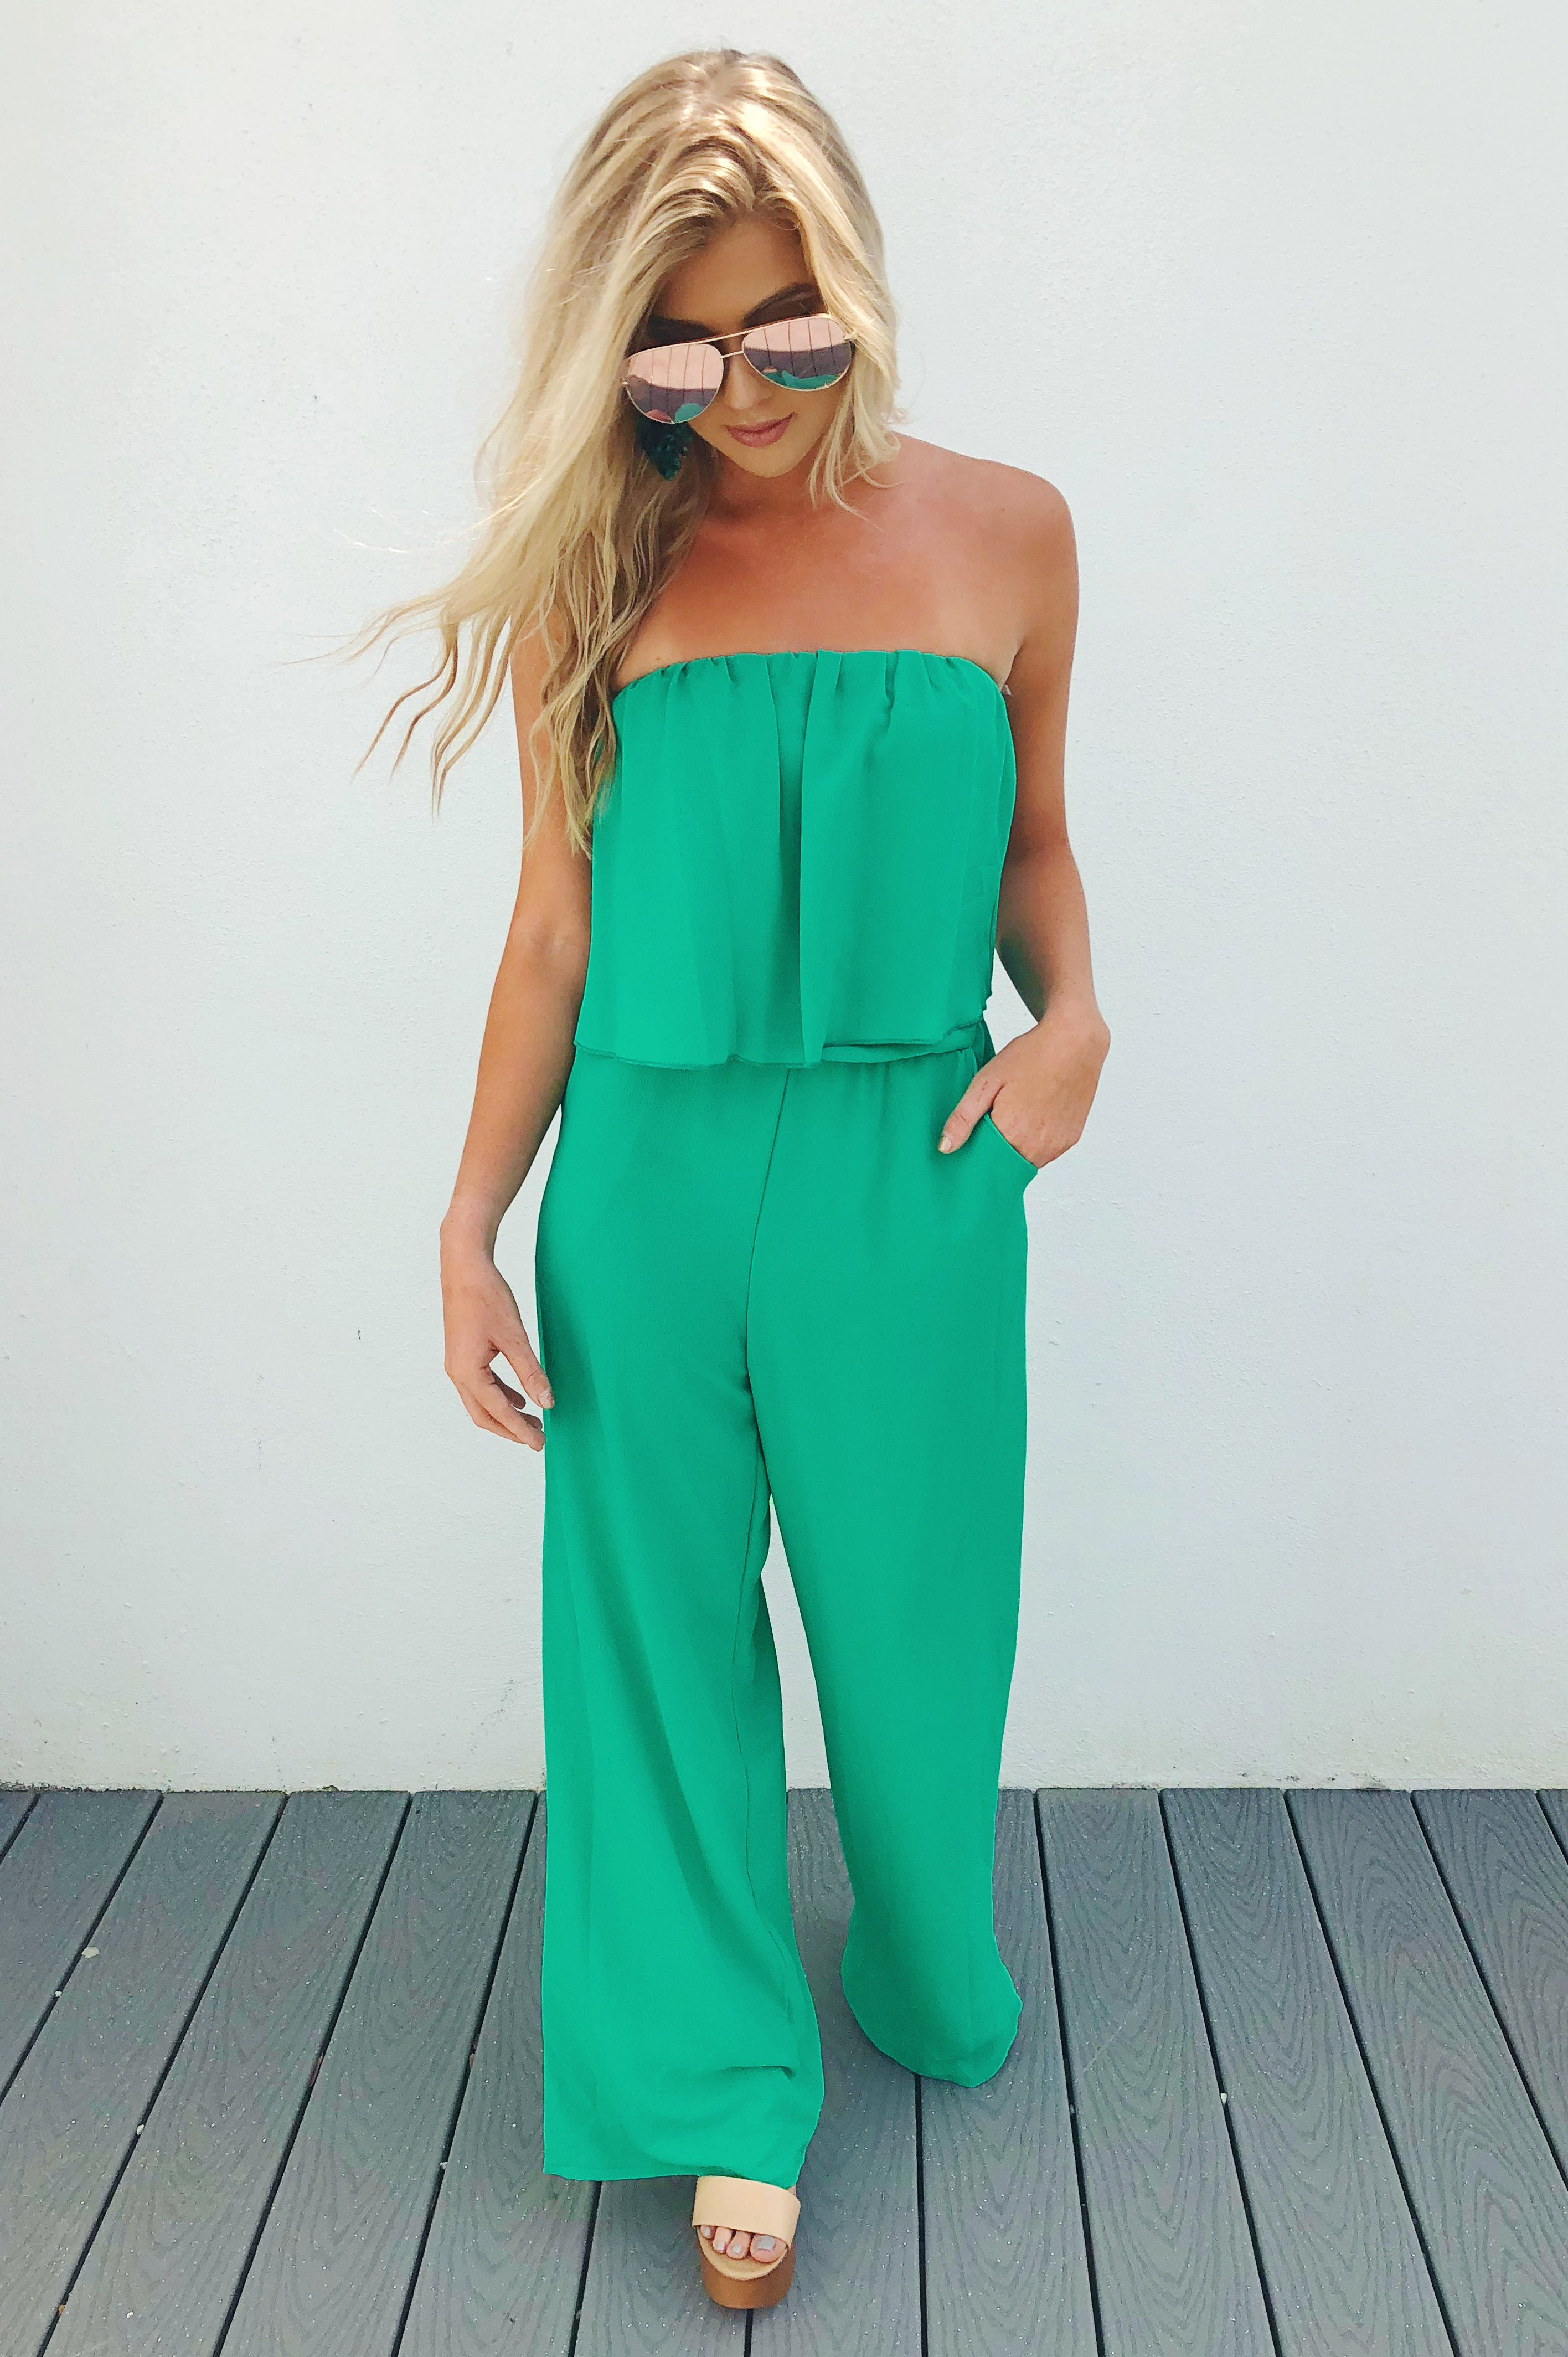 53127c7b23d5 Share to save 10% on your order instantly! What I Want Jumper  Tropical  Green